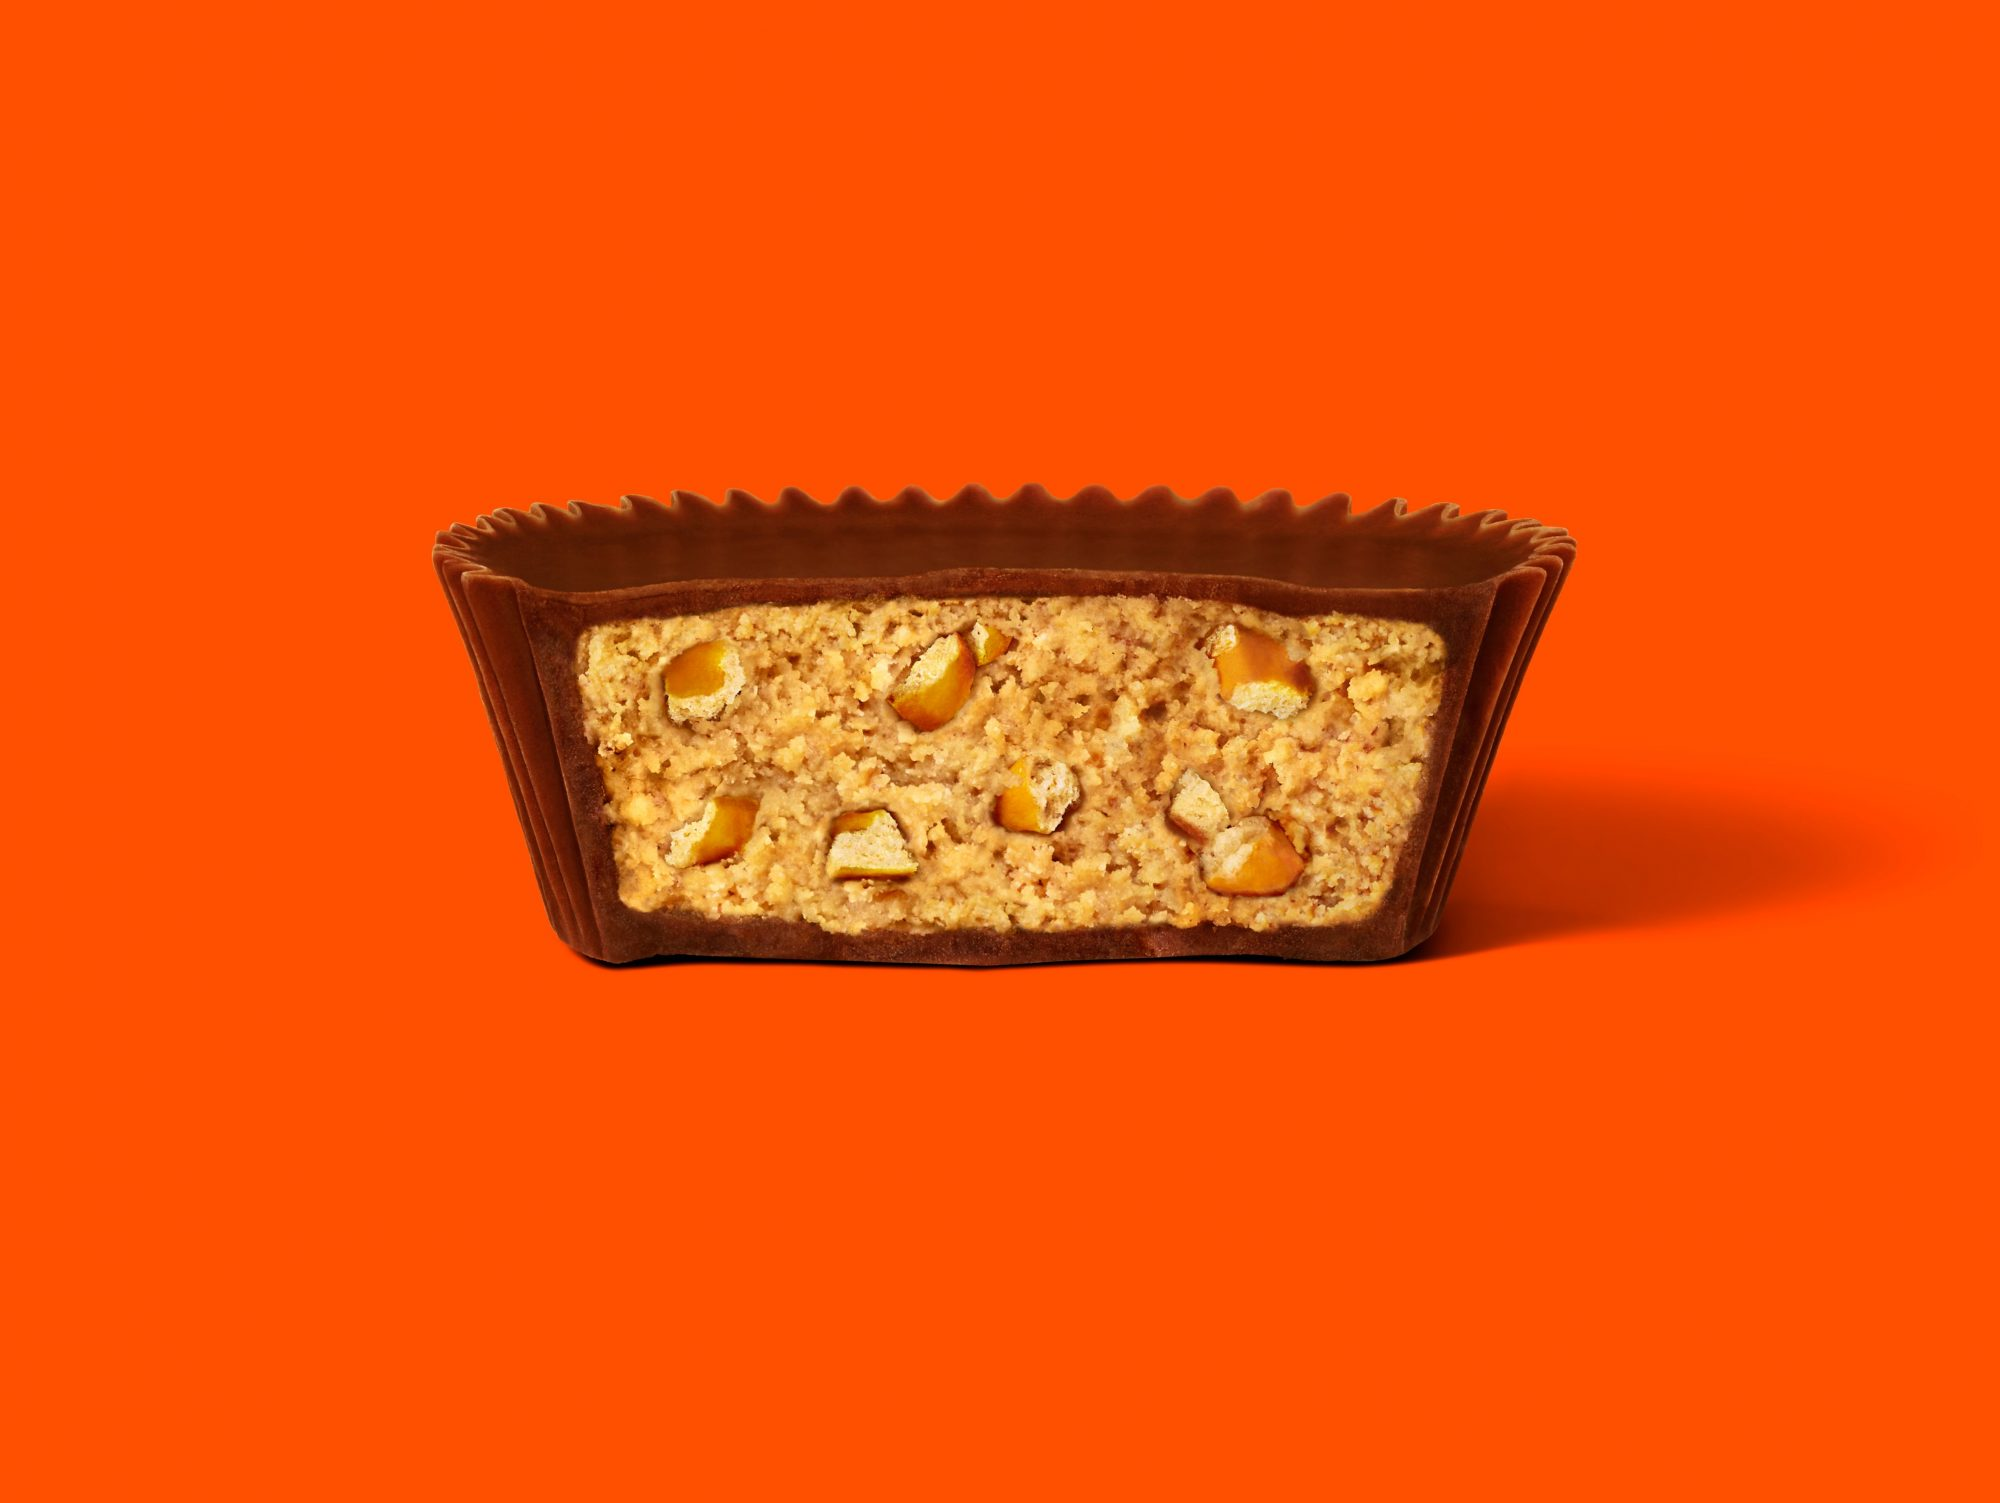 reese's big cups with pretzels interior shot